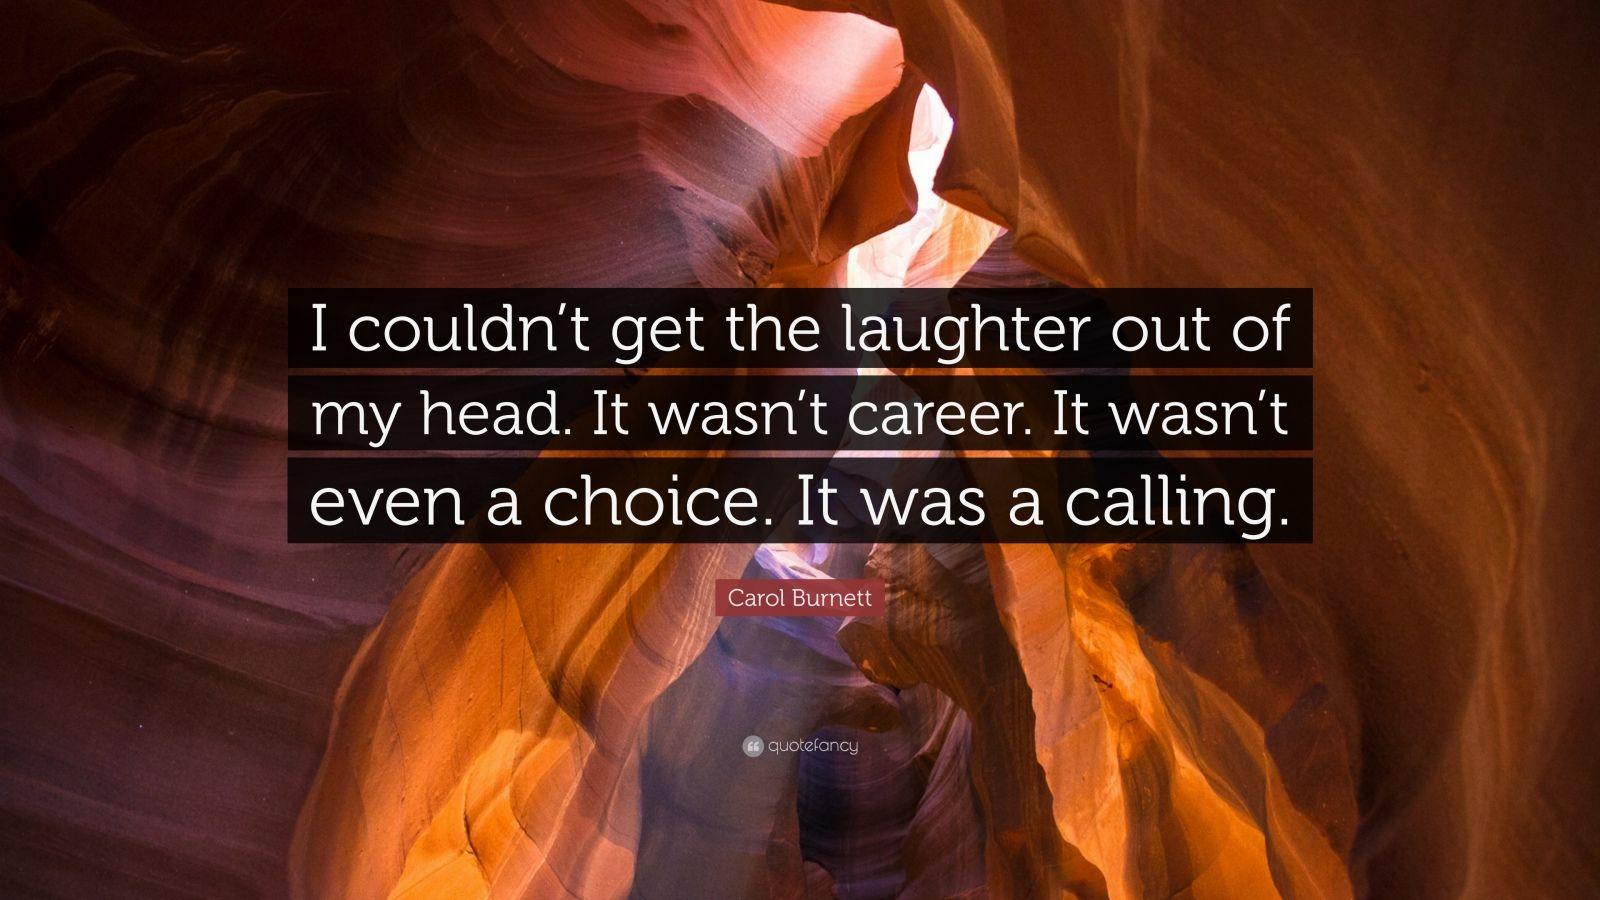 """Carol Burnett Quote: """"I couldn't get the laughter out of my head. It wasn't career. It wasn't even a choice. It was a calling."""""""